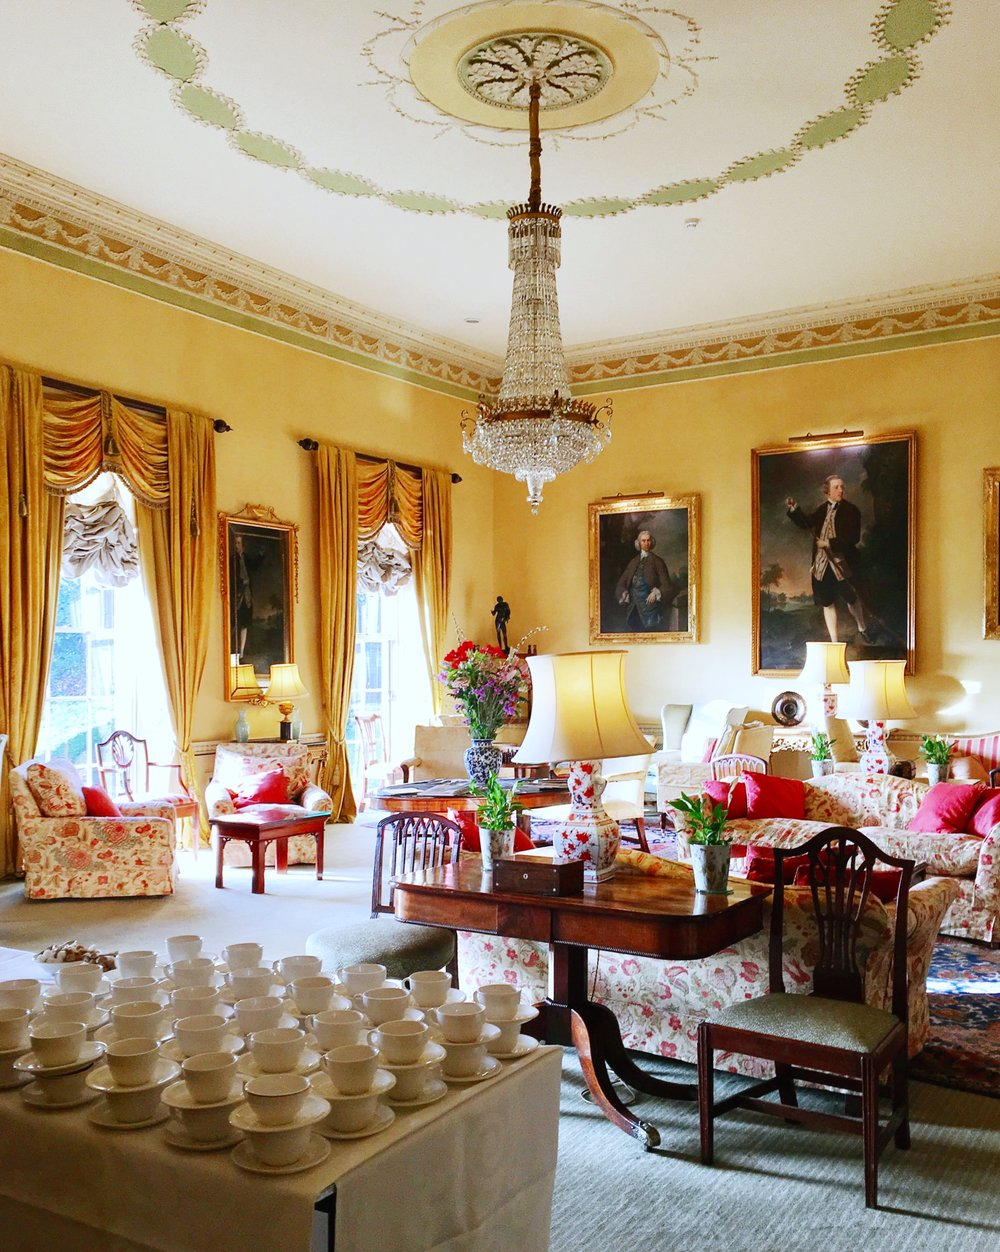 The airy grand reception room with happy, yellow walls. © Eileen Hsieh / Follow That Bug